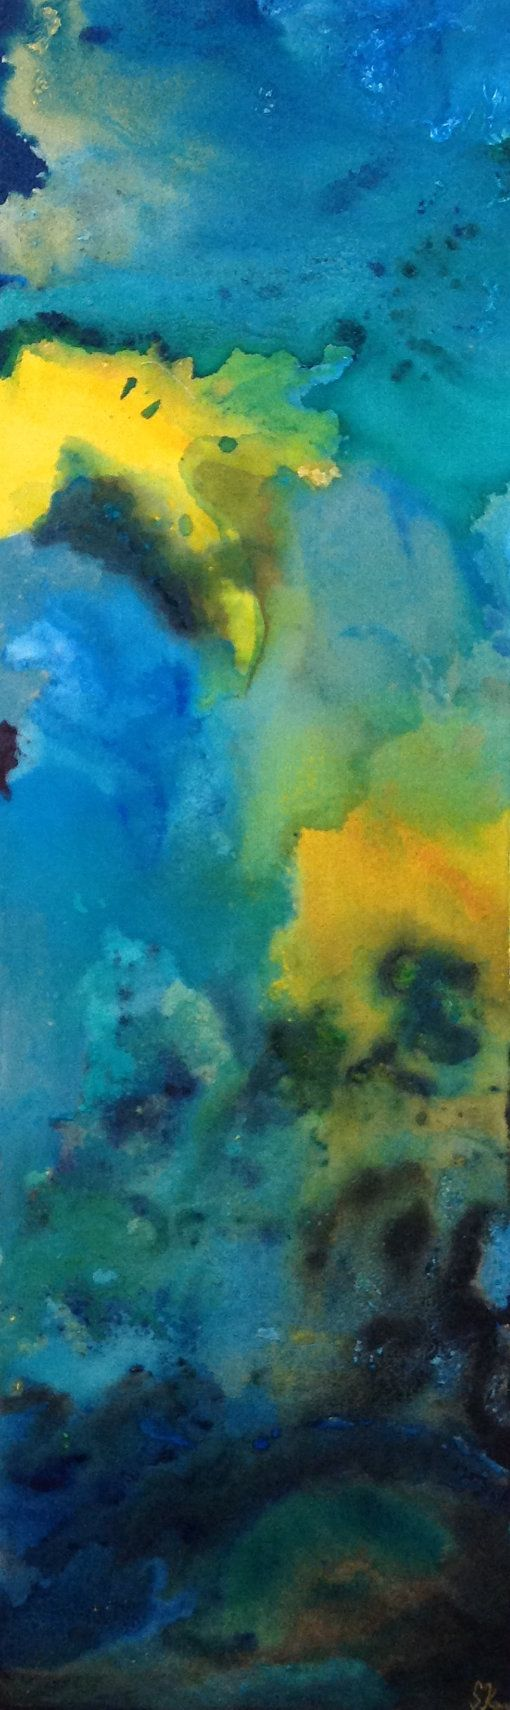 Jealous Mood  Abstract Acrylic on Canvas 36x 12 by LillyBoChic